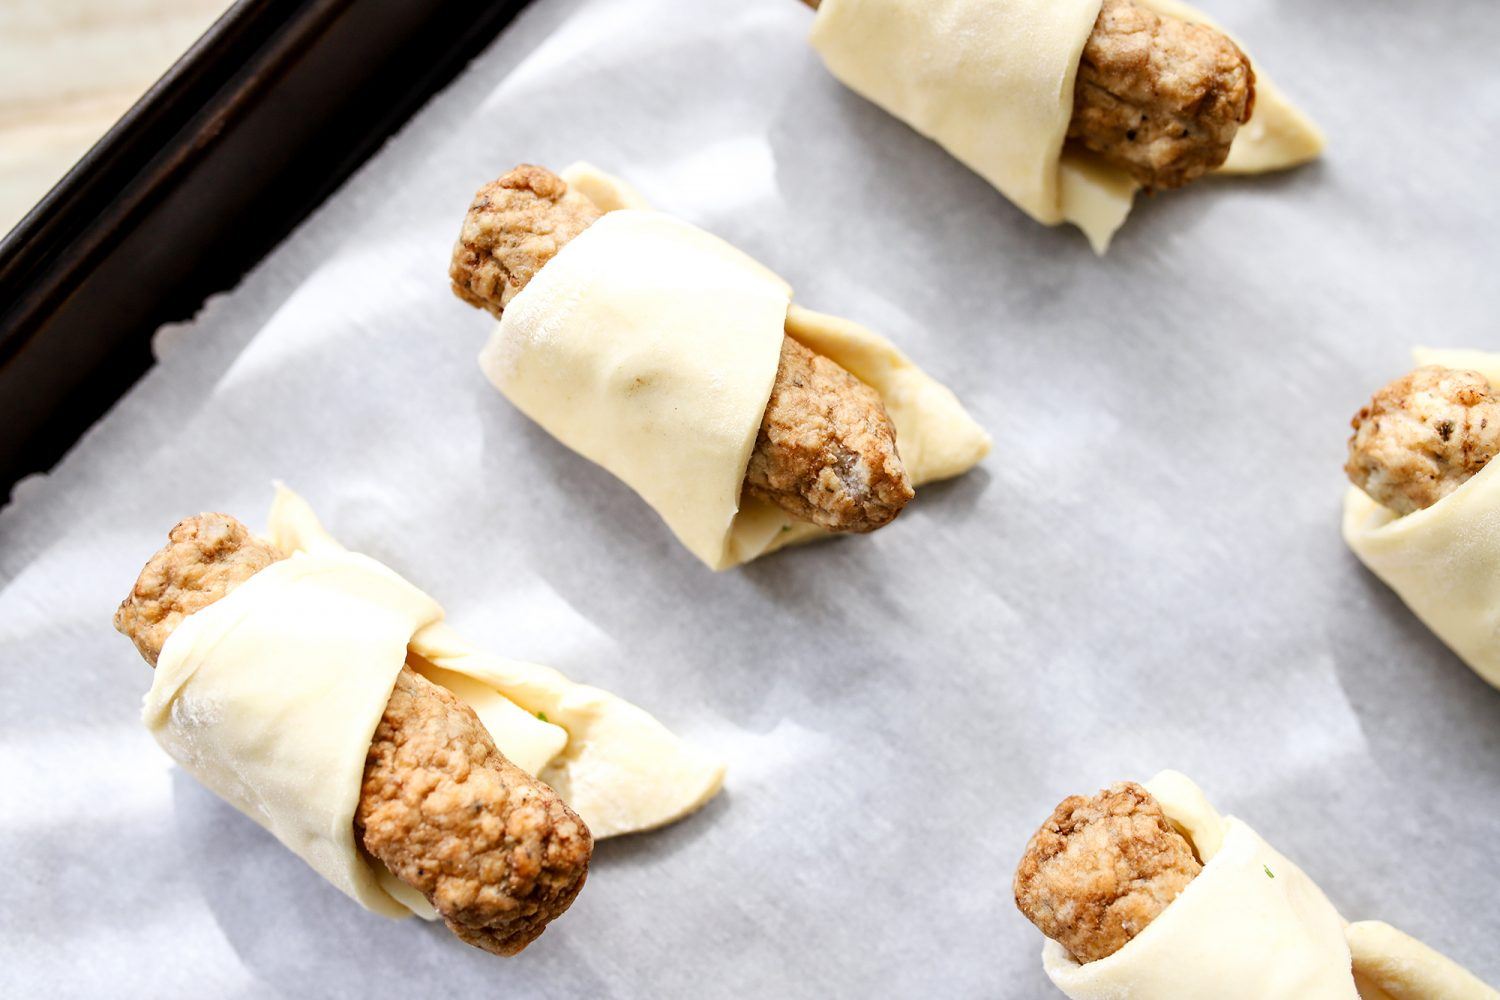 sausage rolled in puff pastry